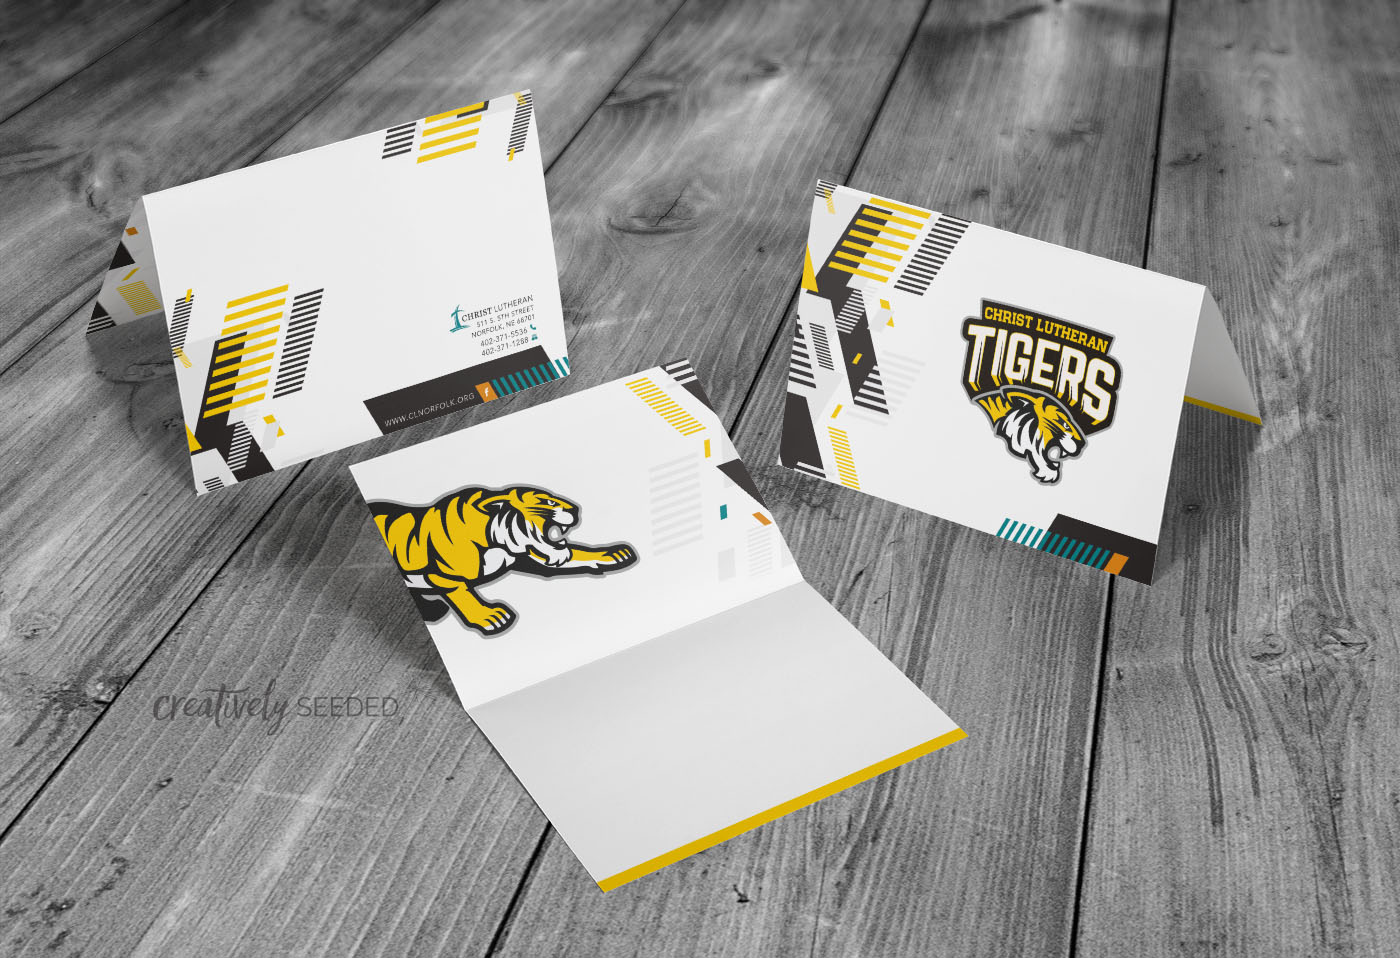 Christ Lutheran School CLS Tigers Thank You Greeting Cards Creatively Seeded